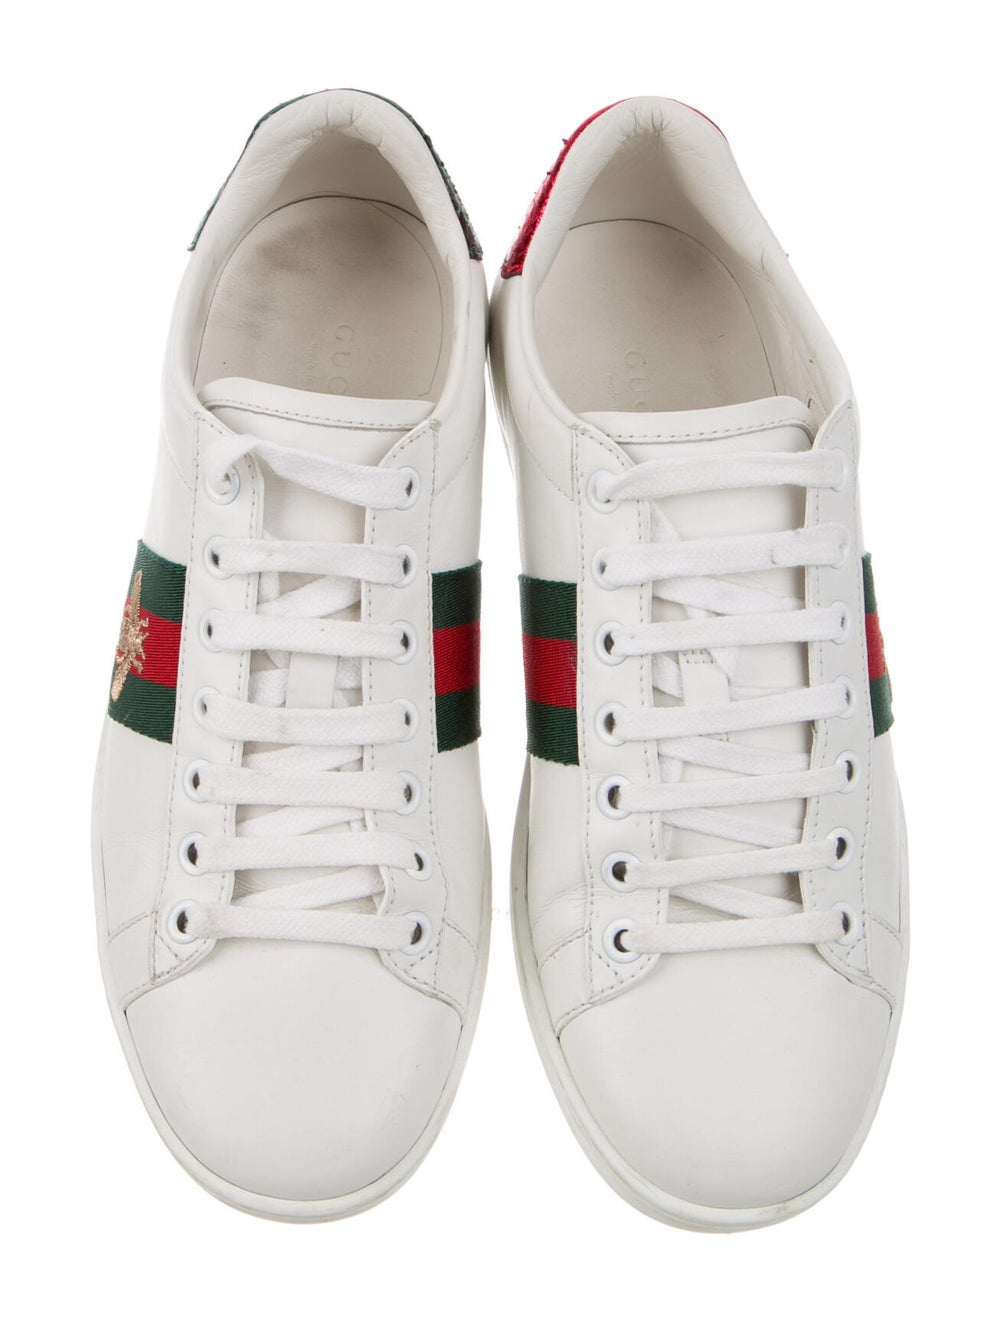 Gucci Leather Sneakers White - image 3